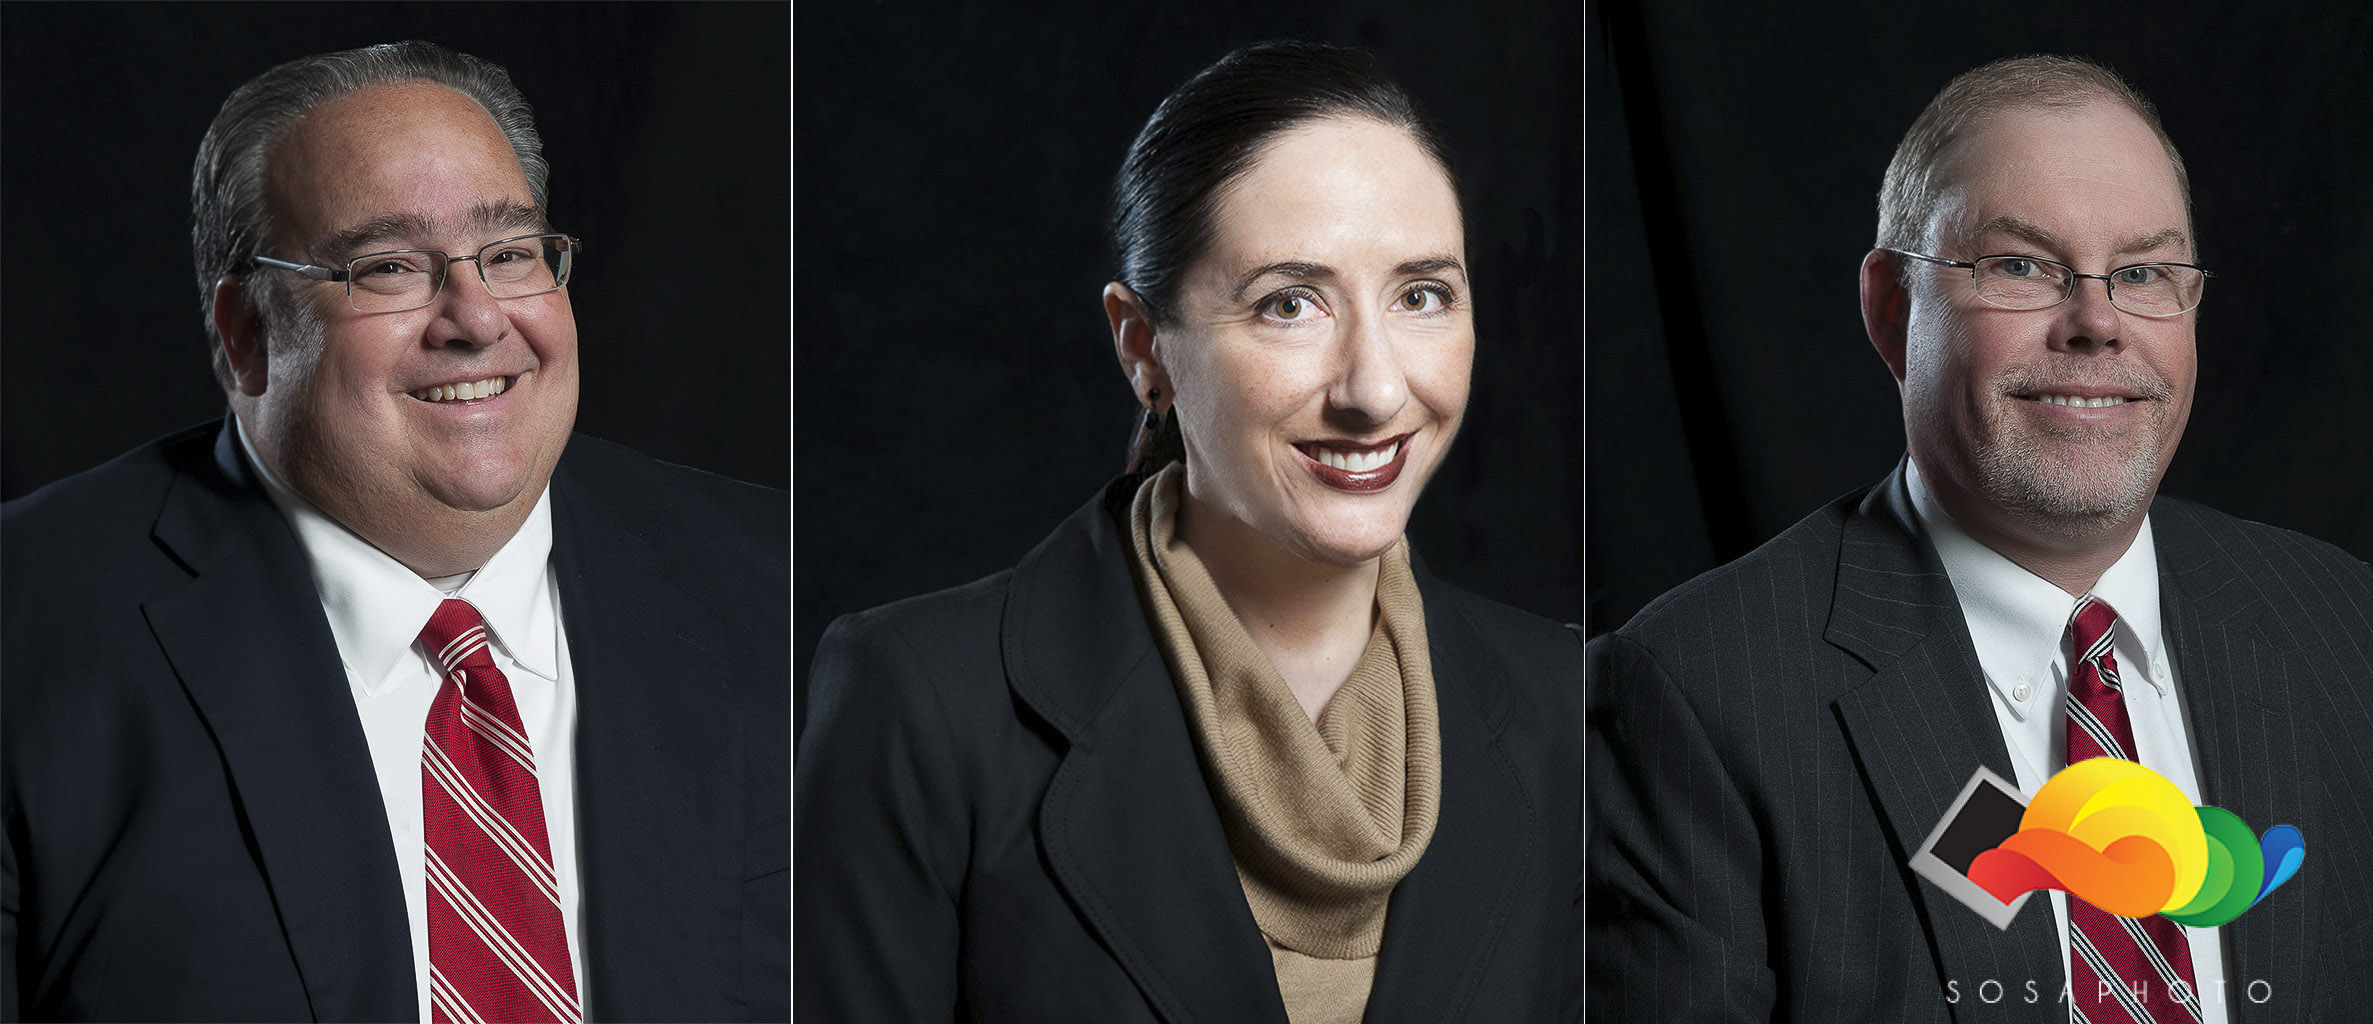 UBS Corporate Headshots